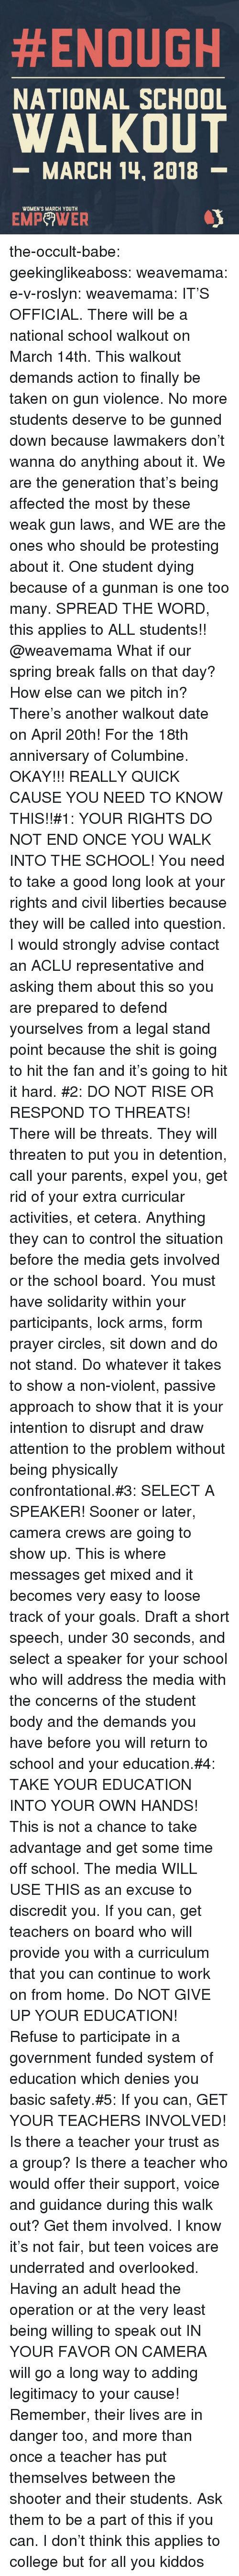 Aclu:  #ENOUGH  NATIONAL SCHOOL  WALKOUT  -MARCH 14, 2018  WOMEN'S MARCH YOUTH  EMPeWER the-occult-babe: geekinglikeaboss:  weavemama:  e-v-roslyn:   weavemama:  IT'S OFFICIAL. There will be a national school walkout on March 14th. This walkout demands action to finally be taken on gun violence. No more students deserve to be gunned down because lawmakers don't wanna do anything about it. We are the generation that's being affected the most by these weak gun laws, and WE are the ones who should be protesting about it. One student dying because of a gunman is one too many.SPREAD THE WORD, this applies to ALL students!!  @weavemama What if our spring break falls on that day? How else can we pitch in?   There's another walkout date on April 20th! For  the 18th anniversary of Columbine.   OKAY!!! REALLY QUICK CAUSE YOU NEED TO KNOW THIS!!#1: YOUR RIGHTS DO NOT END ONCE YOU WALK INTO THE SCHOOL! You need to take a good long look at your rights and civil liberties because they will be called into question. I would strongly advise contact an ACLU representative and asking them about this so you are prepared to defend yourselves from a legal stand point because the shit is going to hit the fan and it's going to hit it hard. #2: DO NOT RISE OR RESPOND TO THREATS! There will be threats. They will threaten to put you in detention, call your parents, expel you, get rid of your extra curricular activities, et cetera. Anything they can to control the situation before the media gets involved or the school board. You must have solidarity within your participants, lock arms, form prayer circles, sit down and do not stand. Do whatever it takes to show a non-violent, passive approach to show that it is your intention to disrupt and draw attention to the problem without being physically confrontational.#3: SELECT A SPEAKER! Sooner or later, camera crews are going to show up. This is where messages get mixed and it becomes very easy to loose track of your goals. Draft a short speech, un